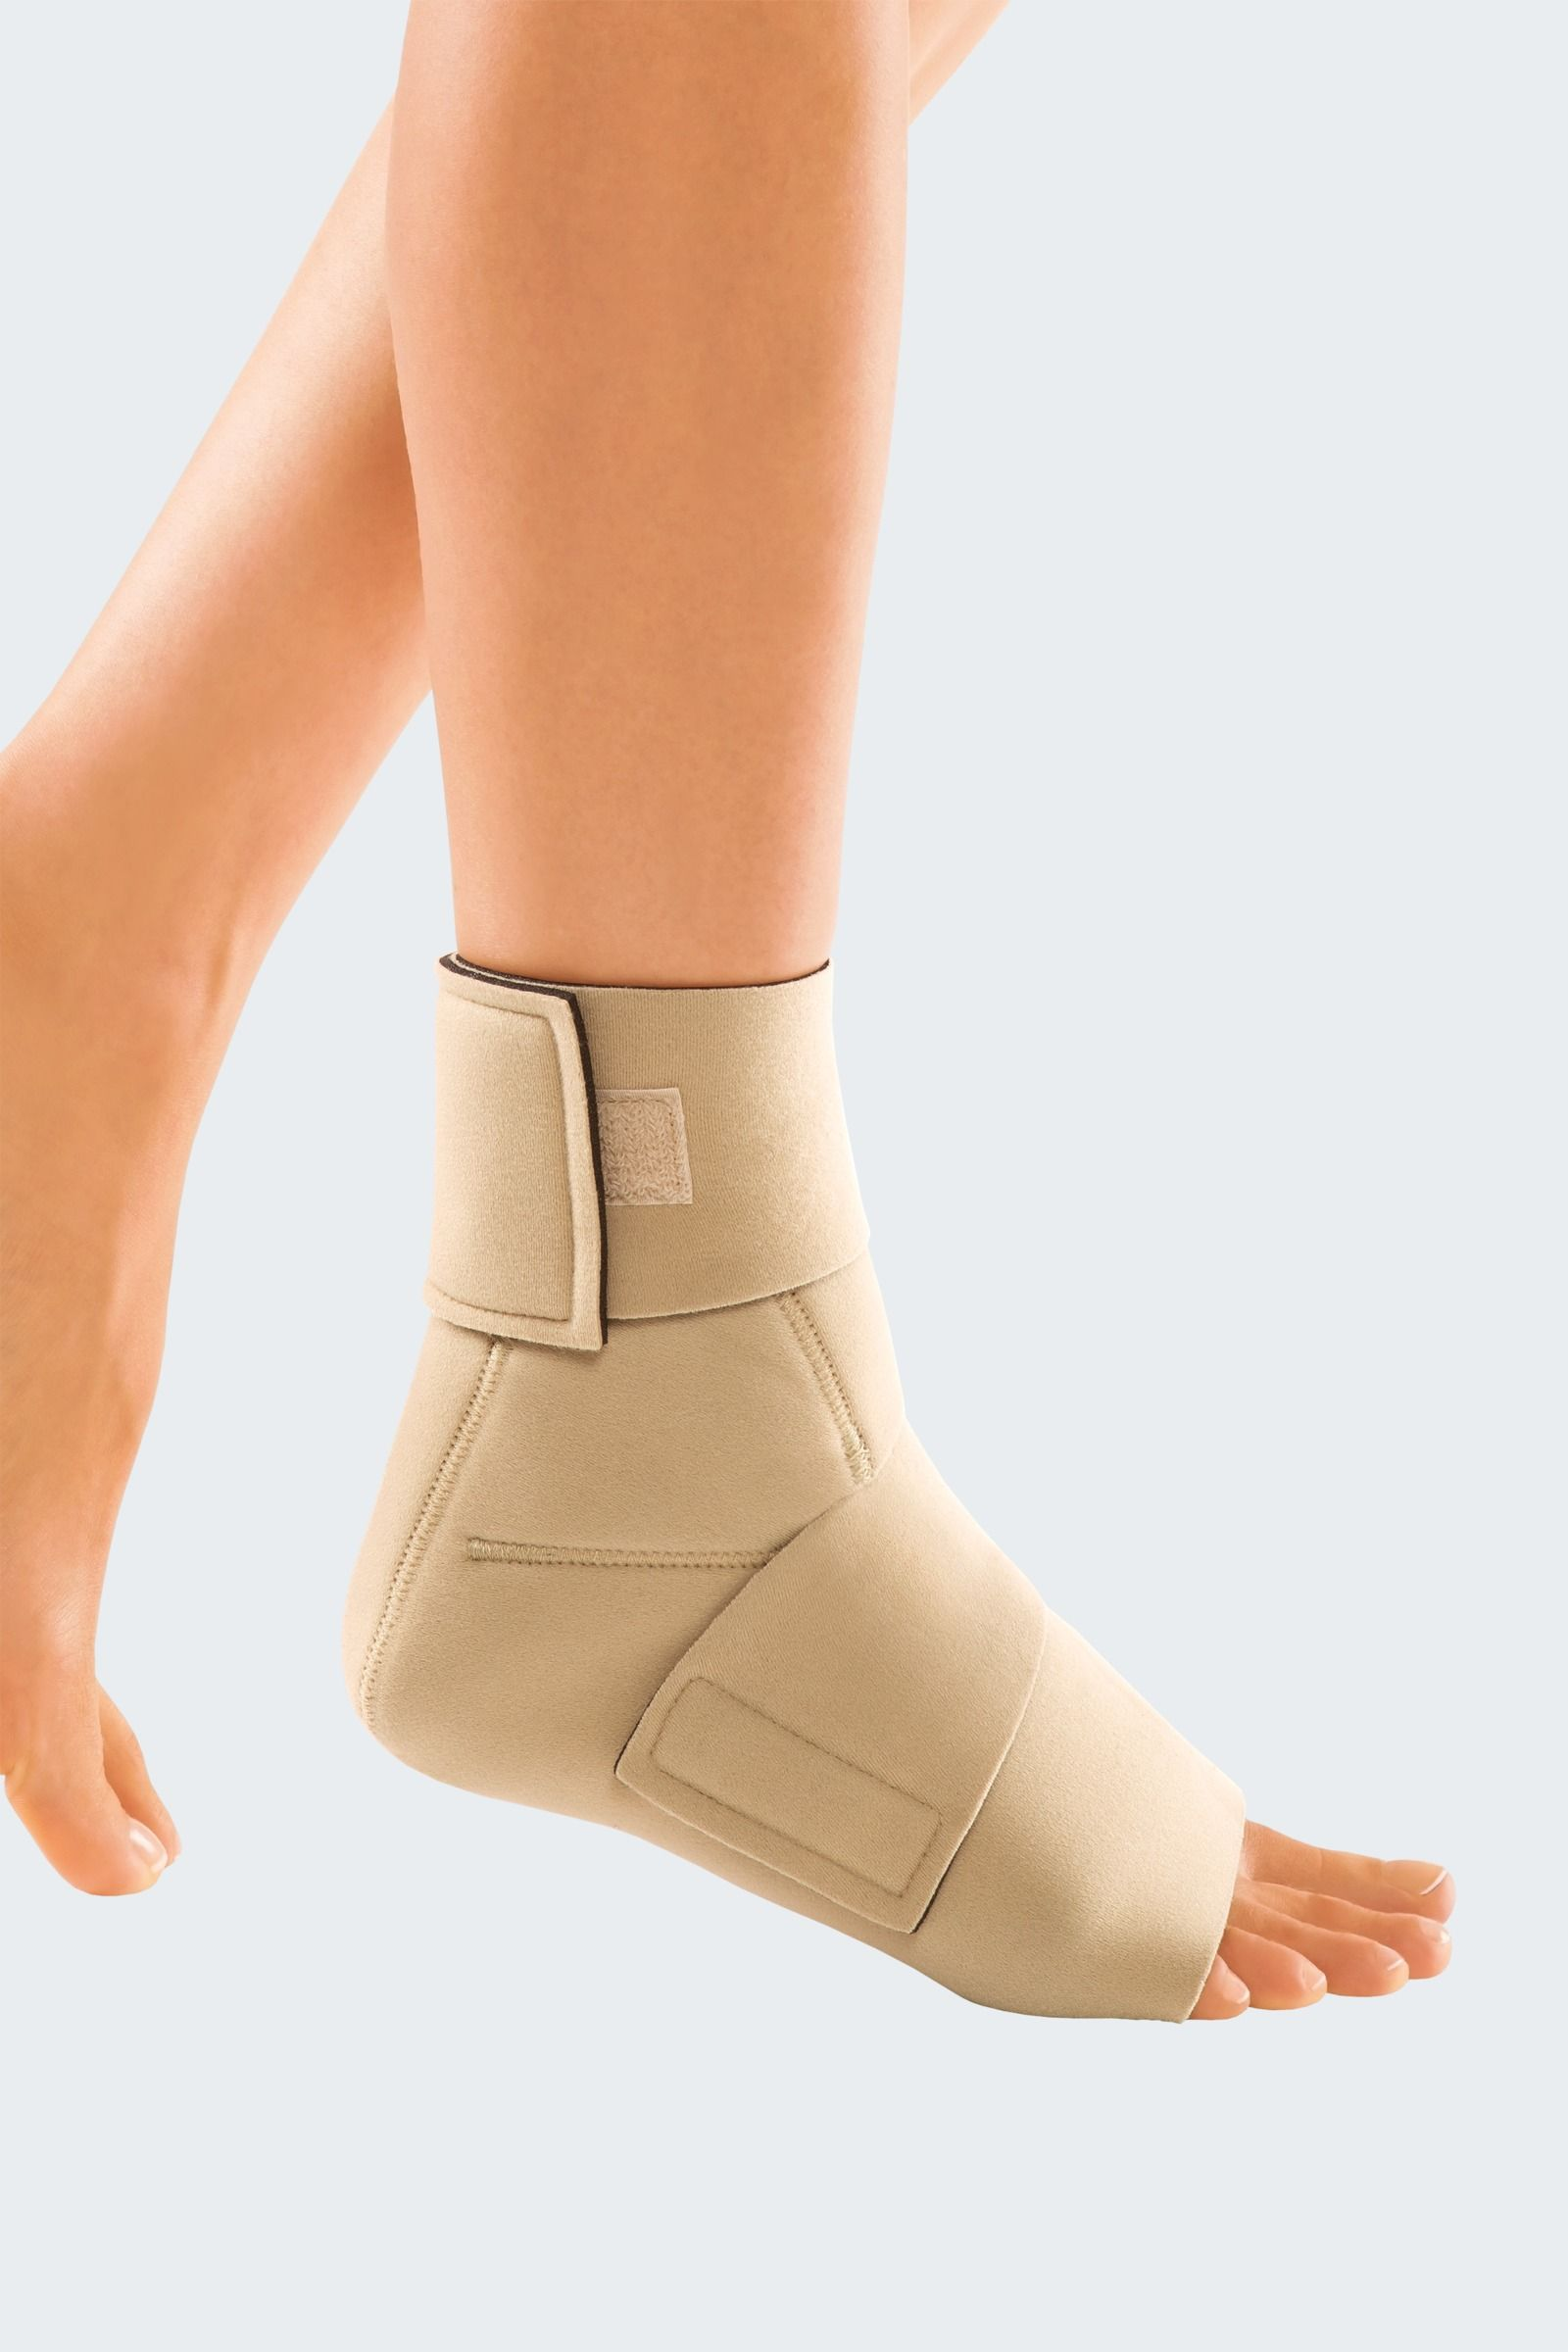 76abbb6f650c8a Juxta-Fit ankle foot wrap